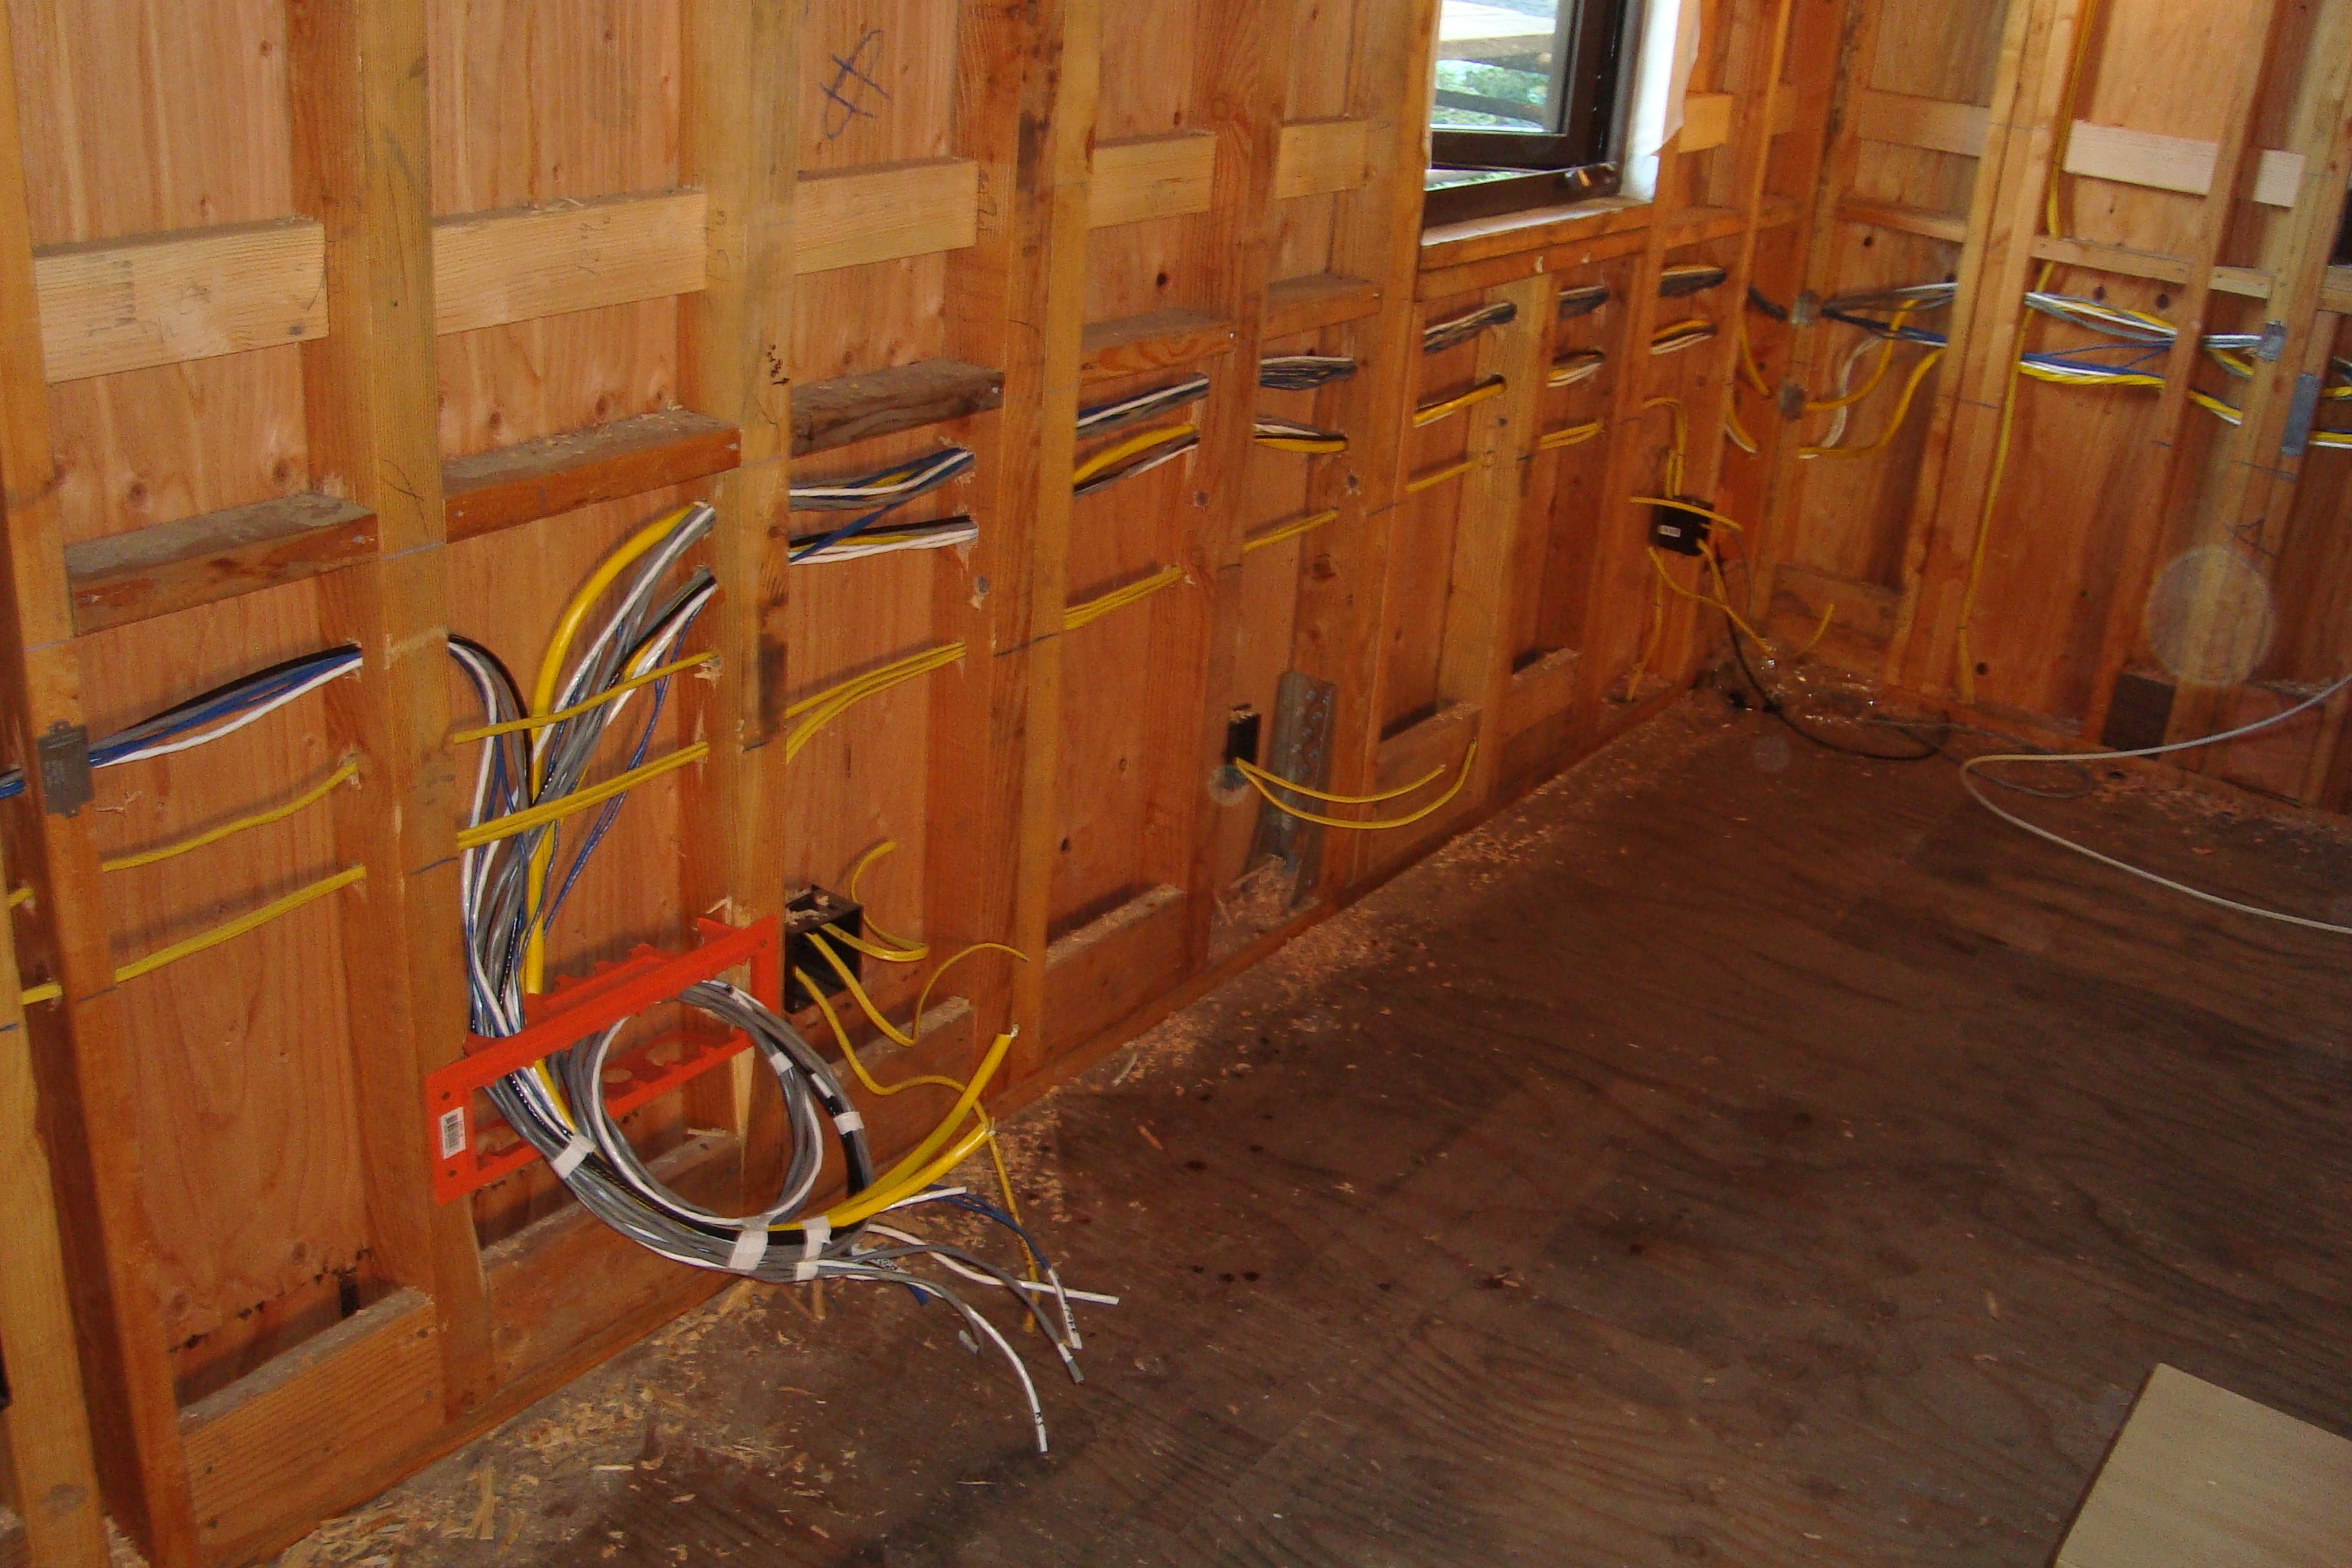 Electrical Wiring In House